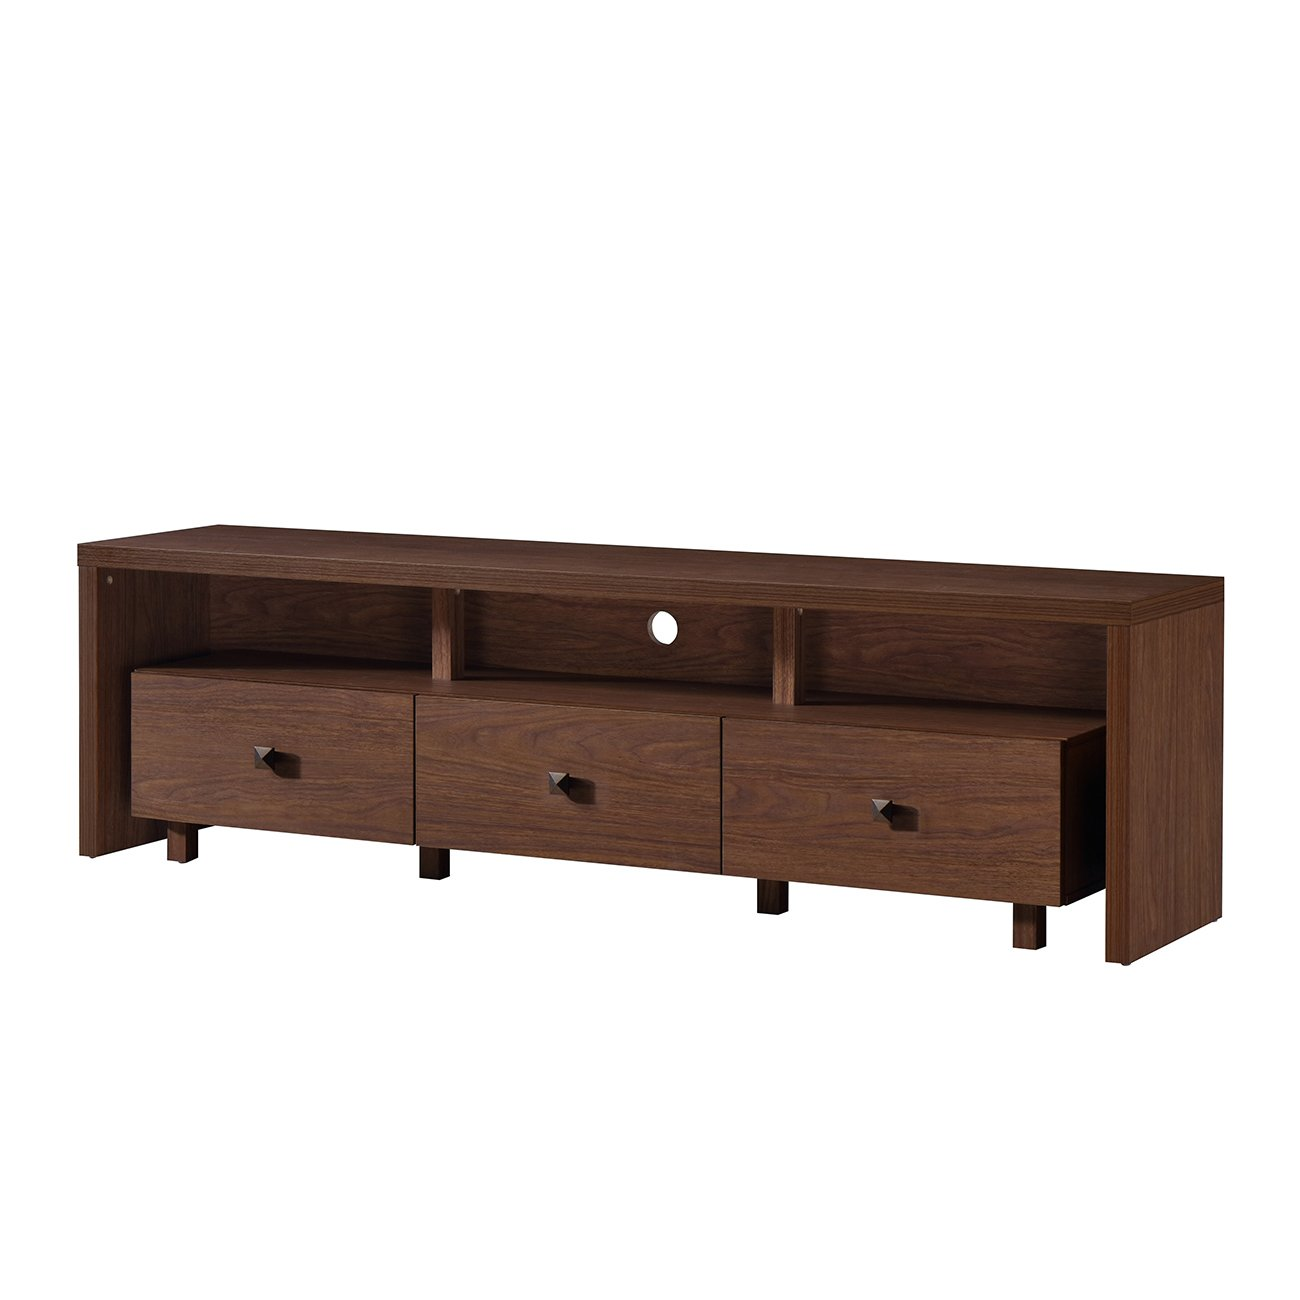 Techni Mobili 70 TV Stand in Hickory